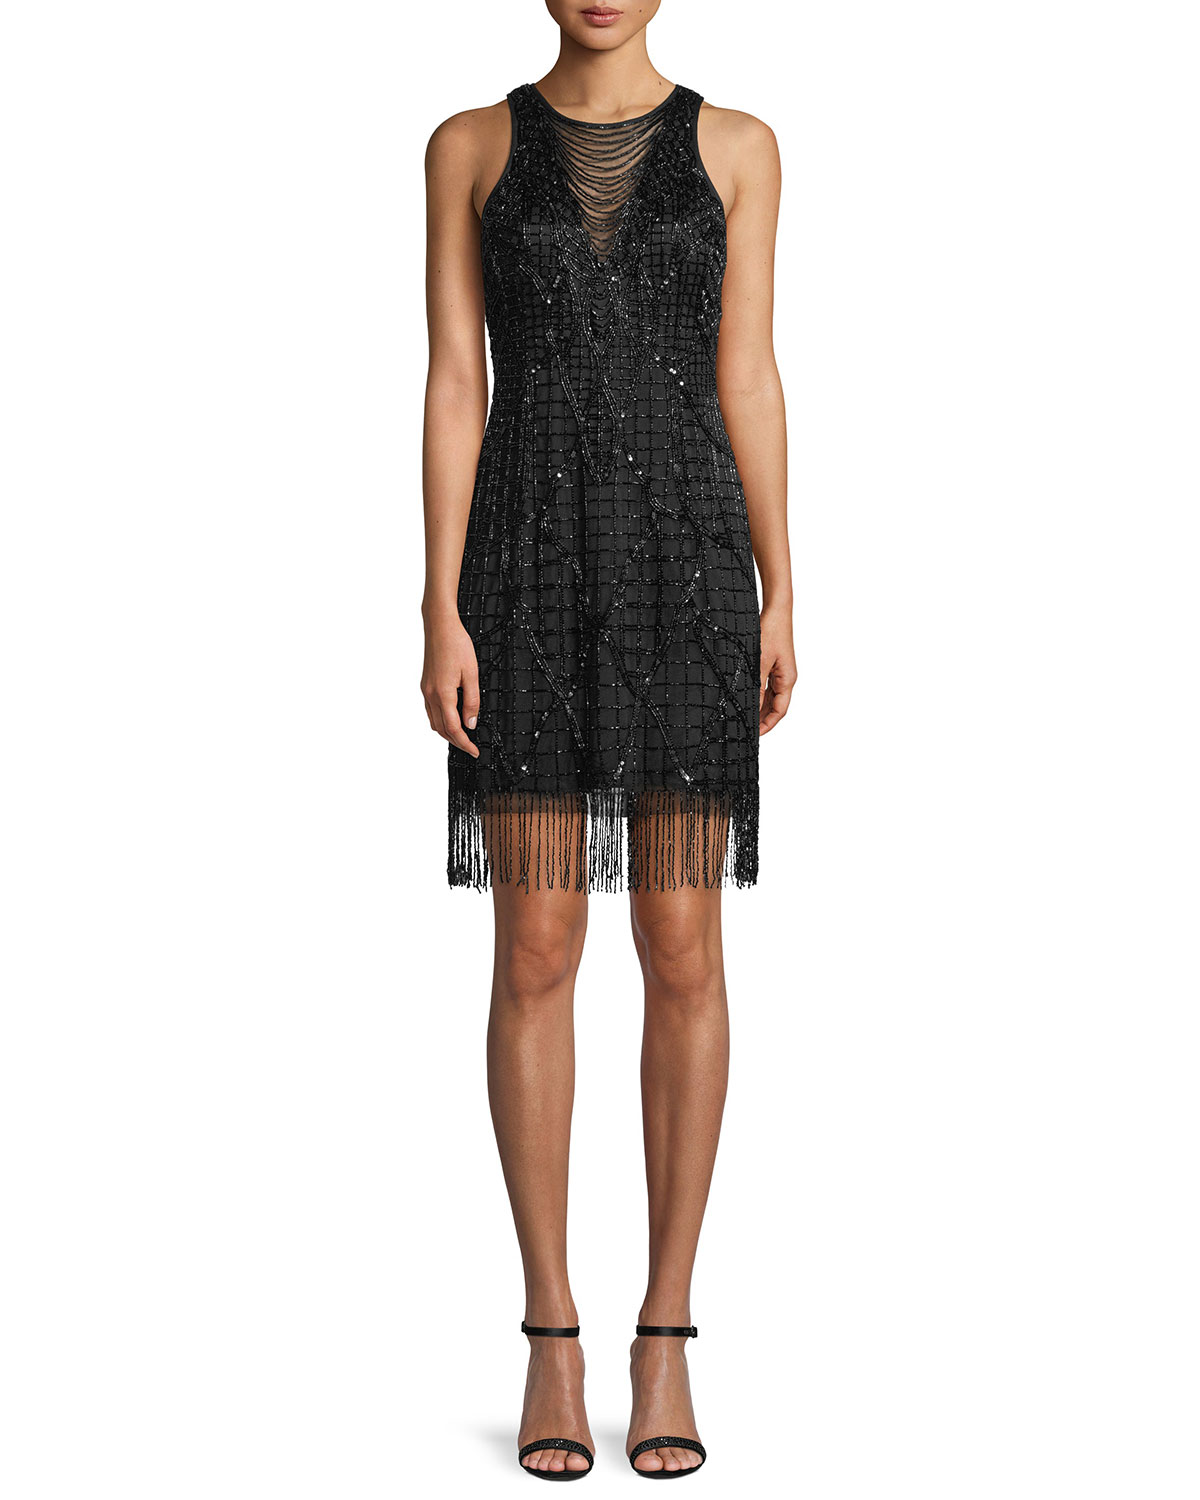 2b949fcb6d9 Aidan Mattox Sleeveless Little Black Cocktail Dress w  Beading   Fringe